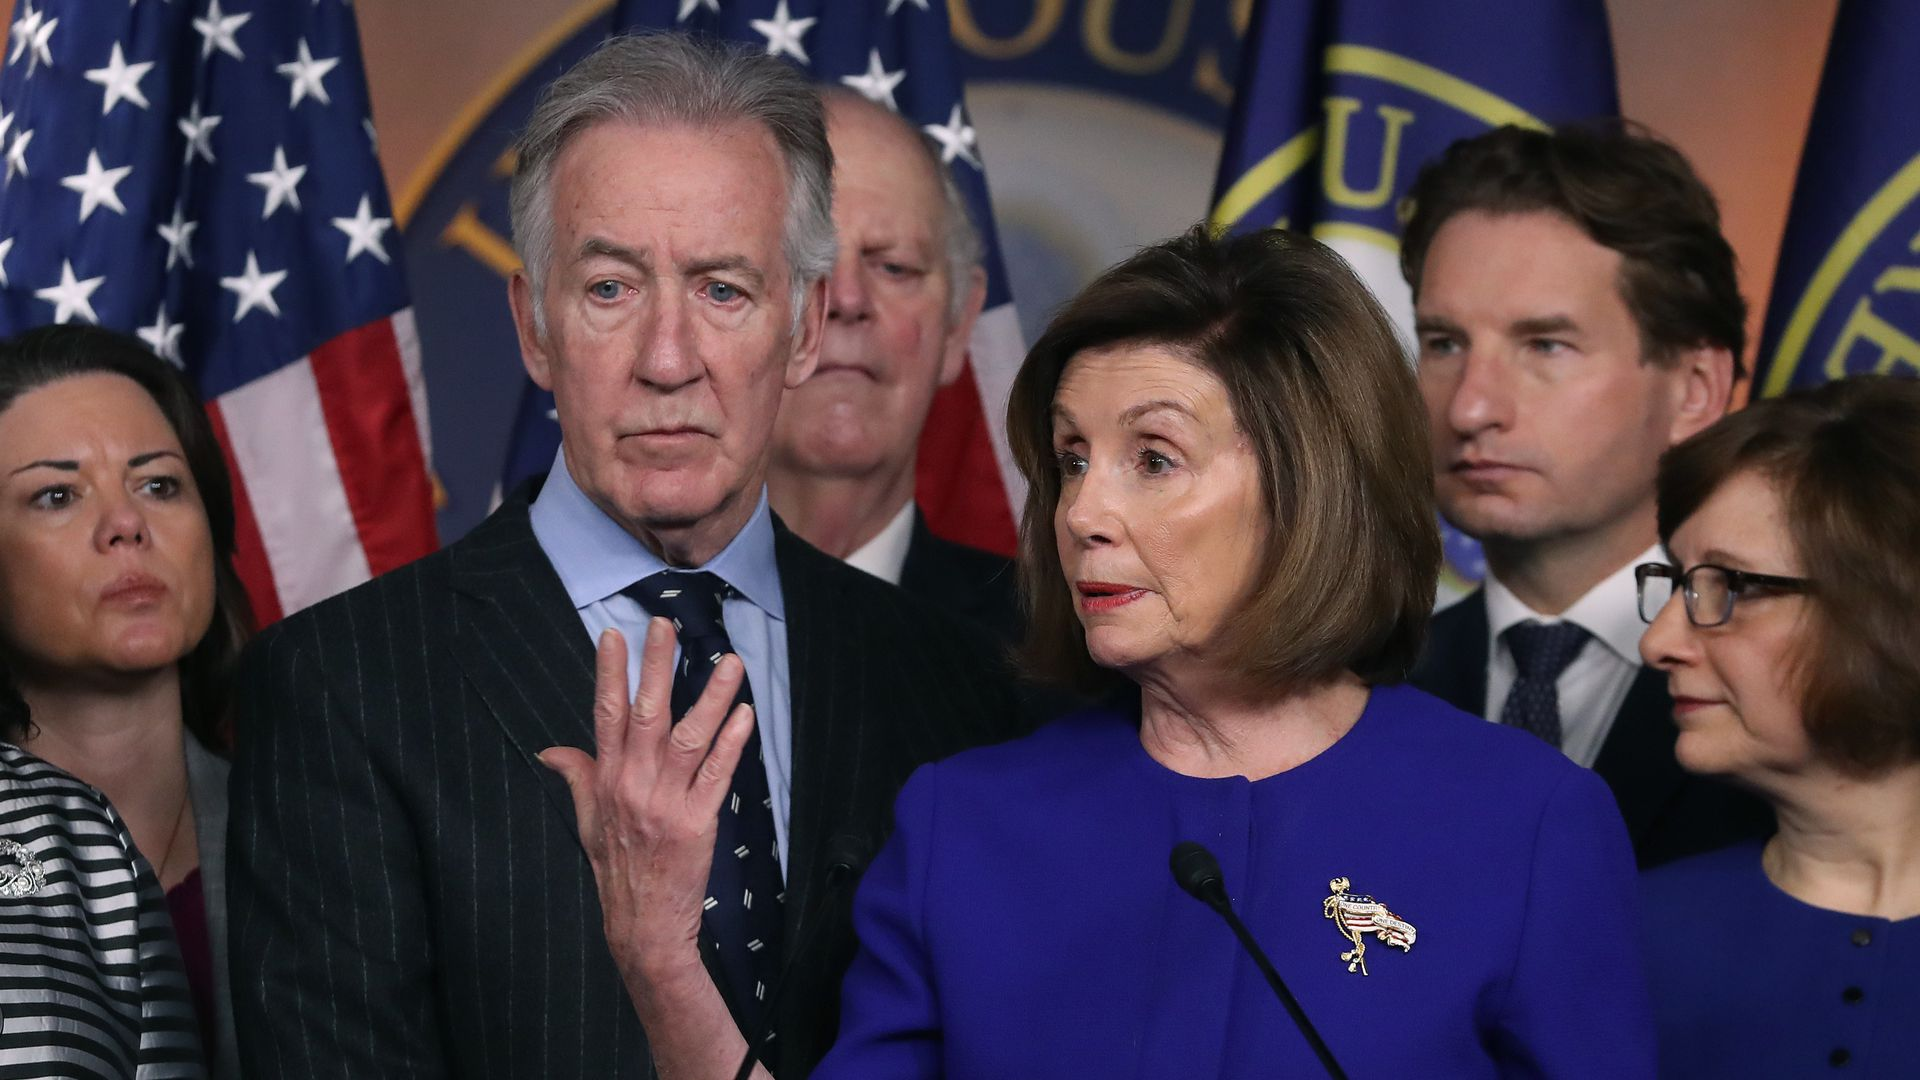 Nancy Pelosi and a group of Democrats at a press conference